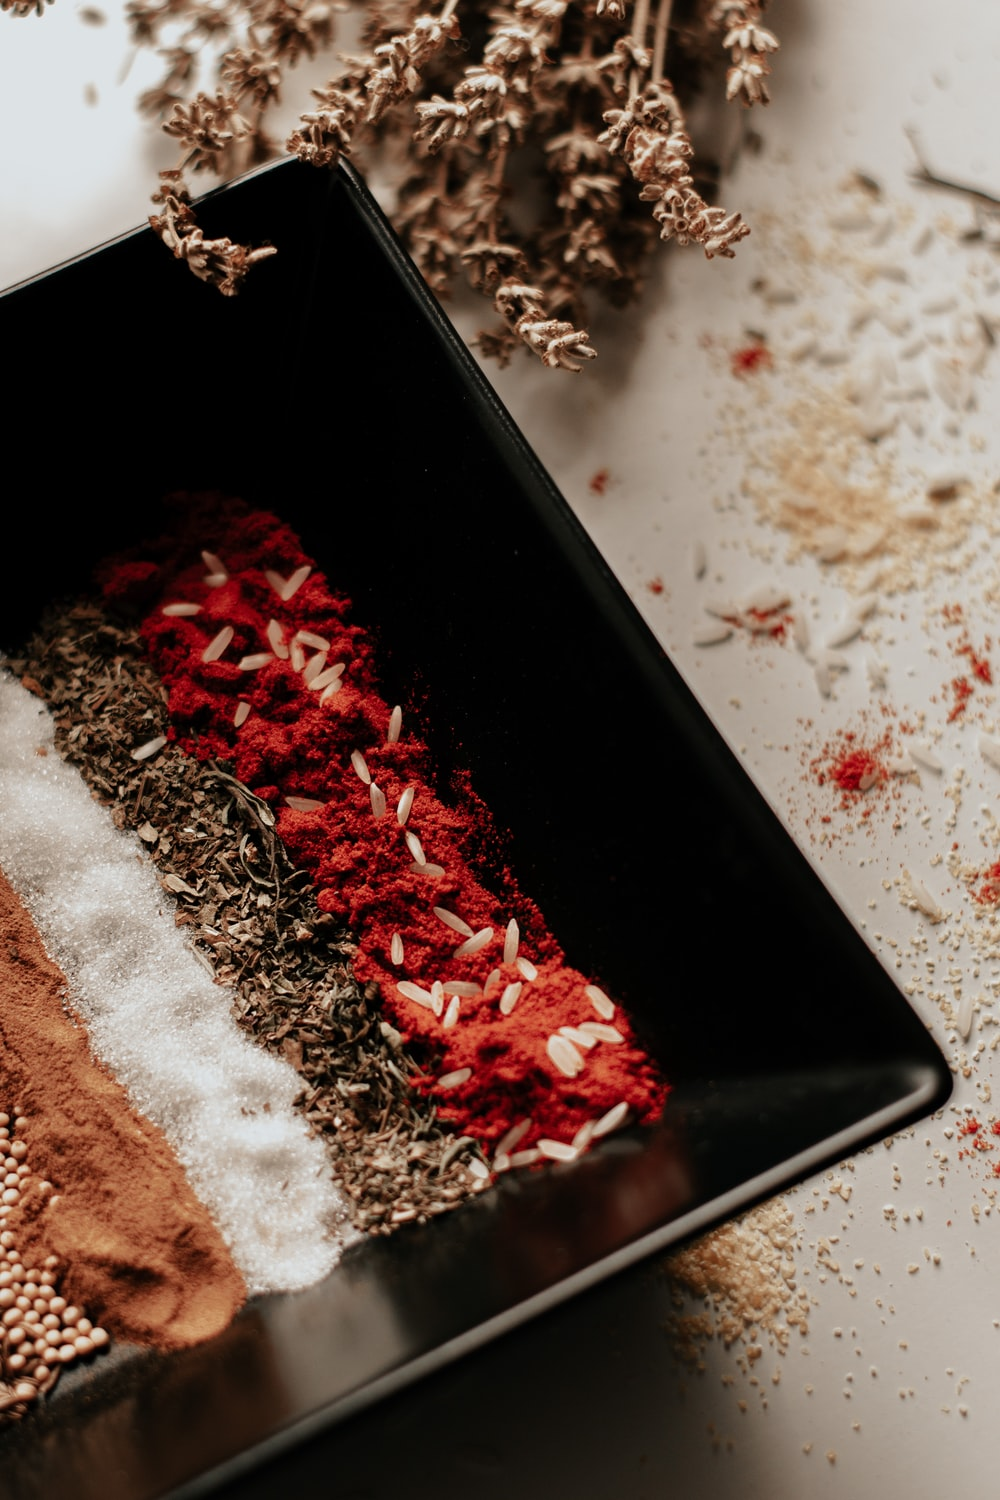 red powder in black container